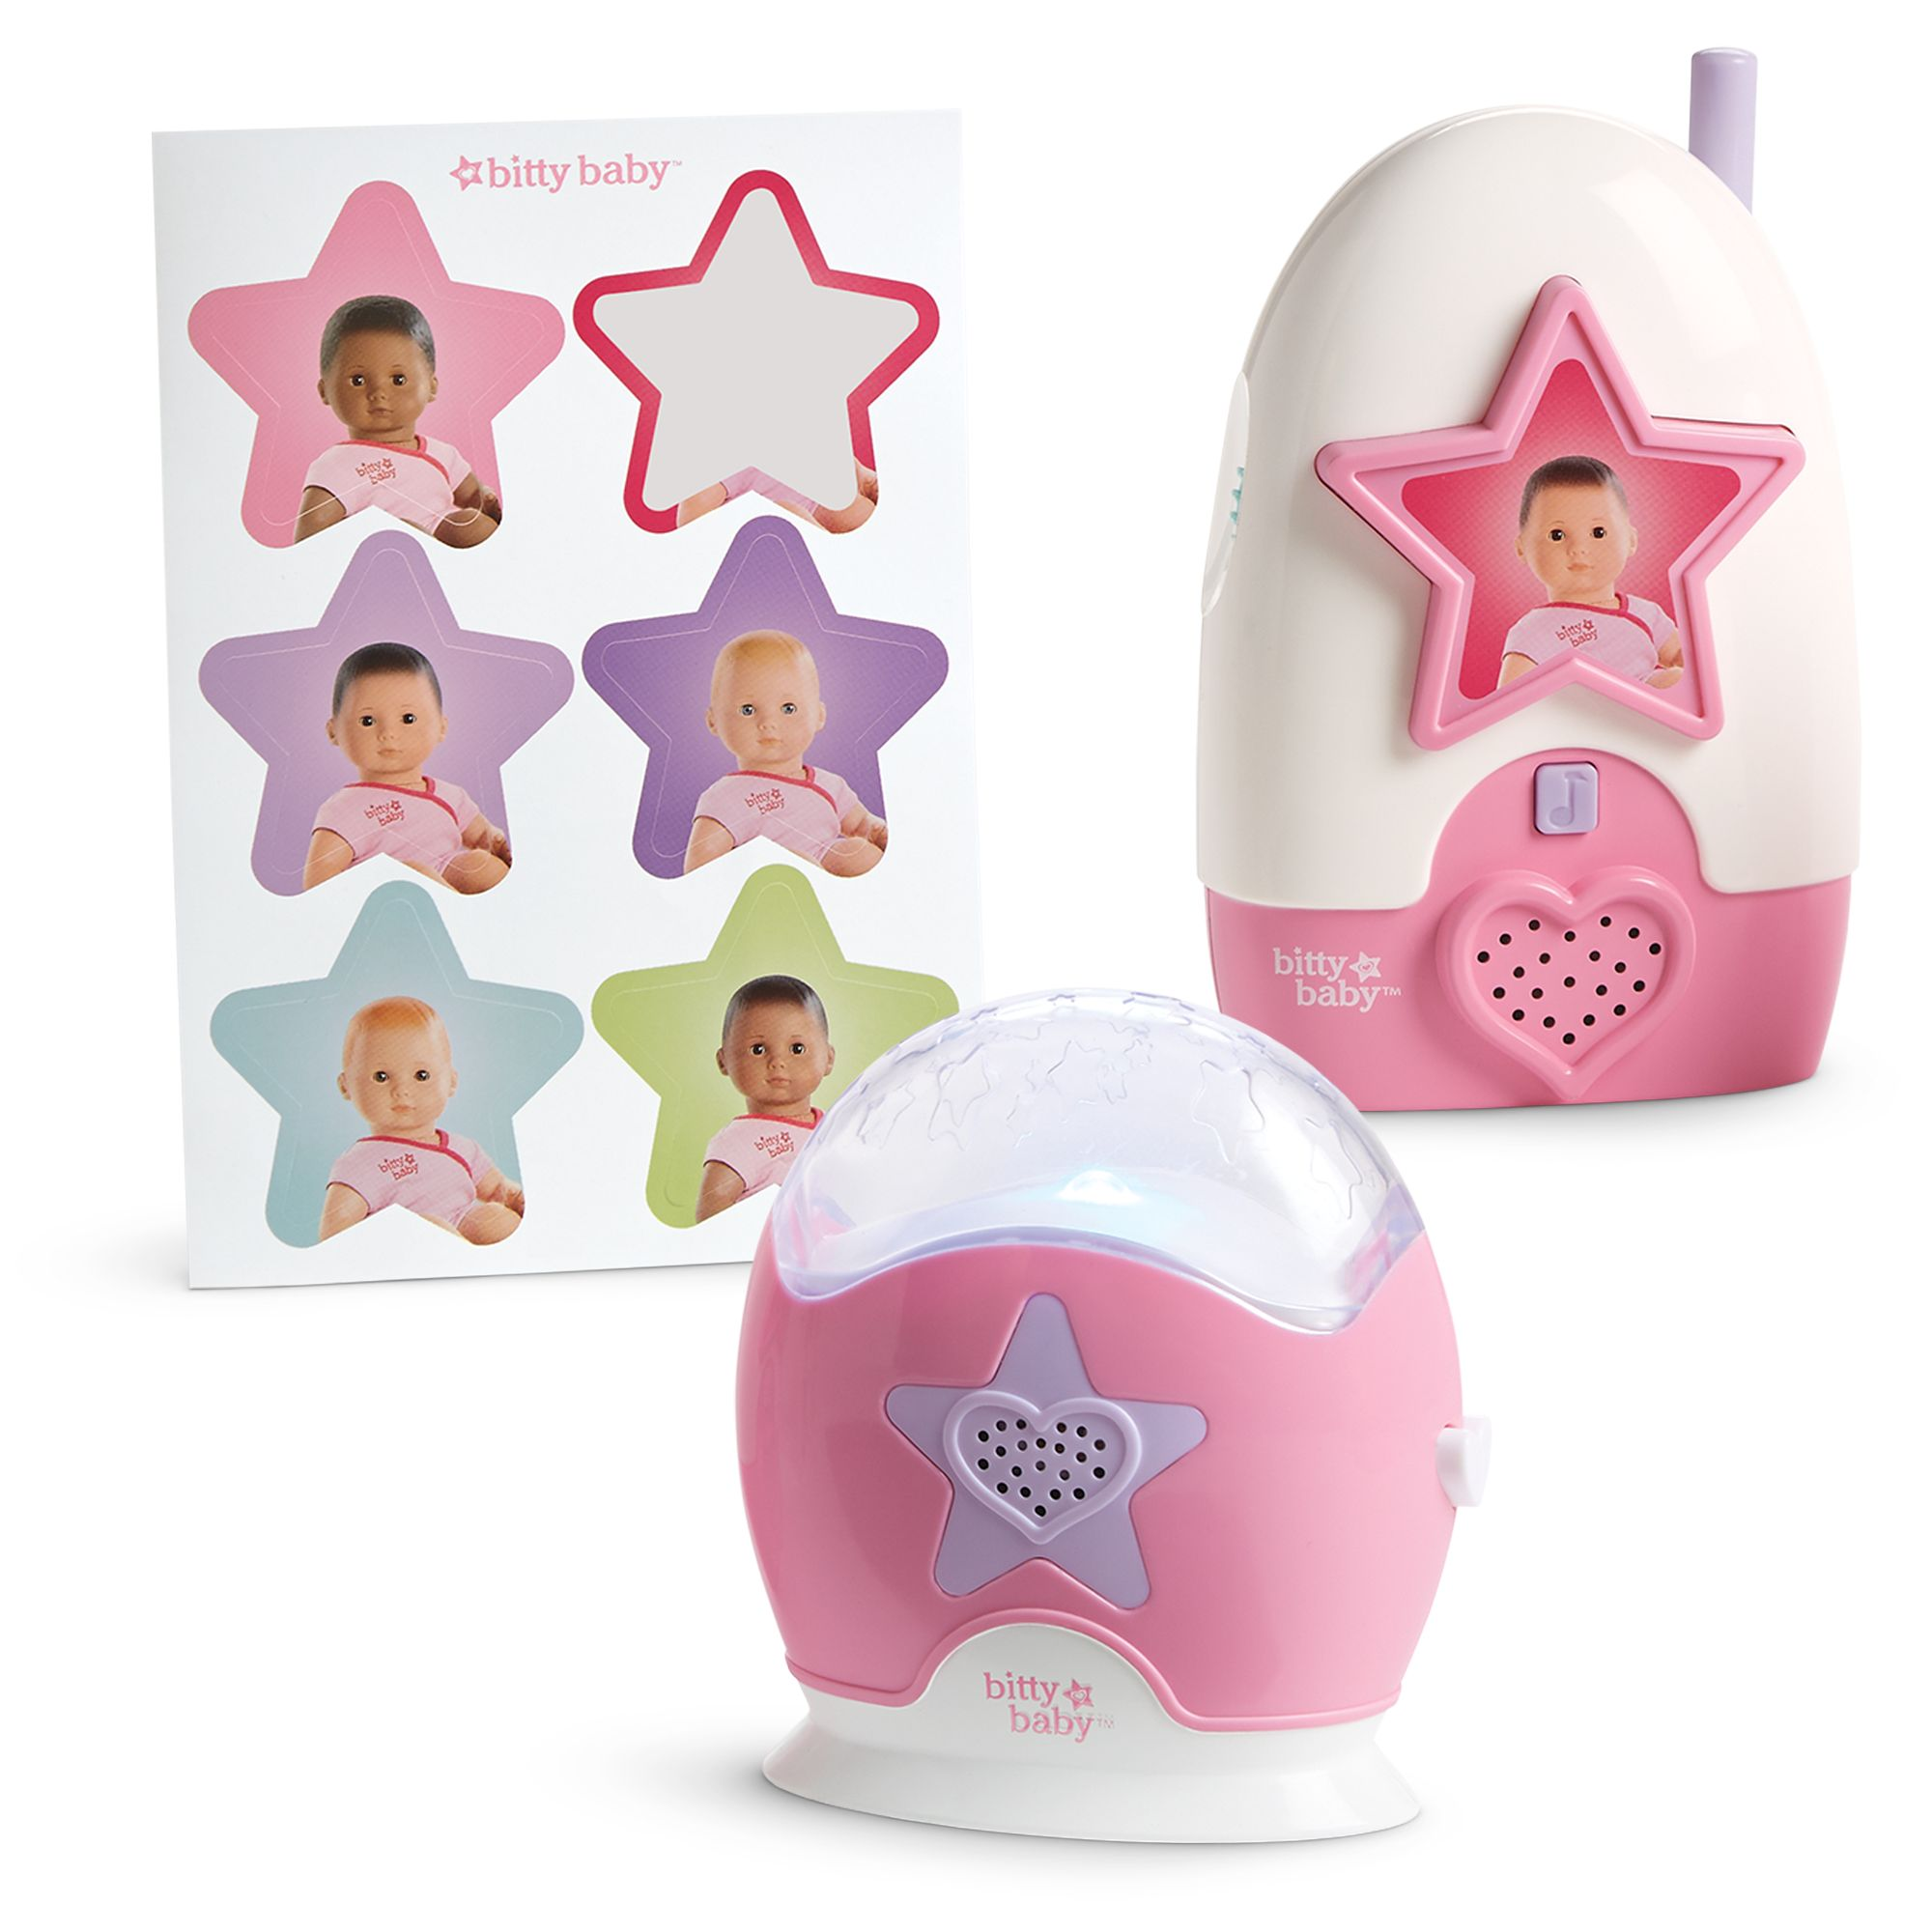 Bitty Baby's Lights and Sounds Monitor